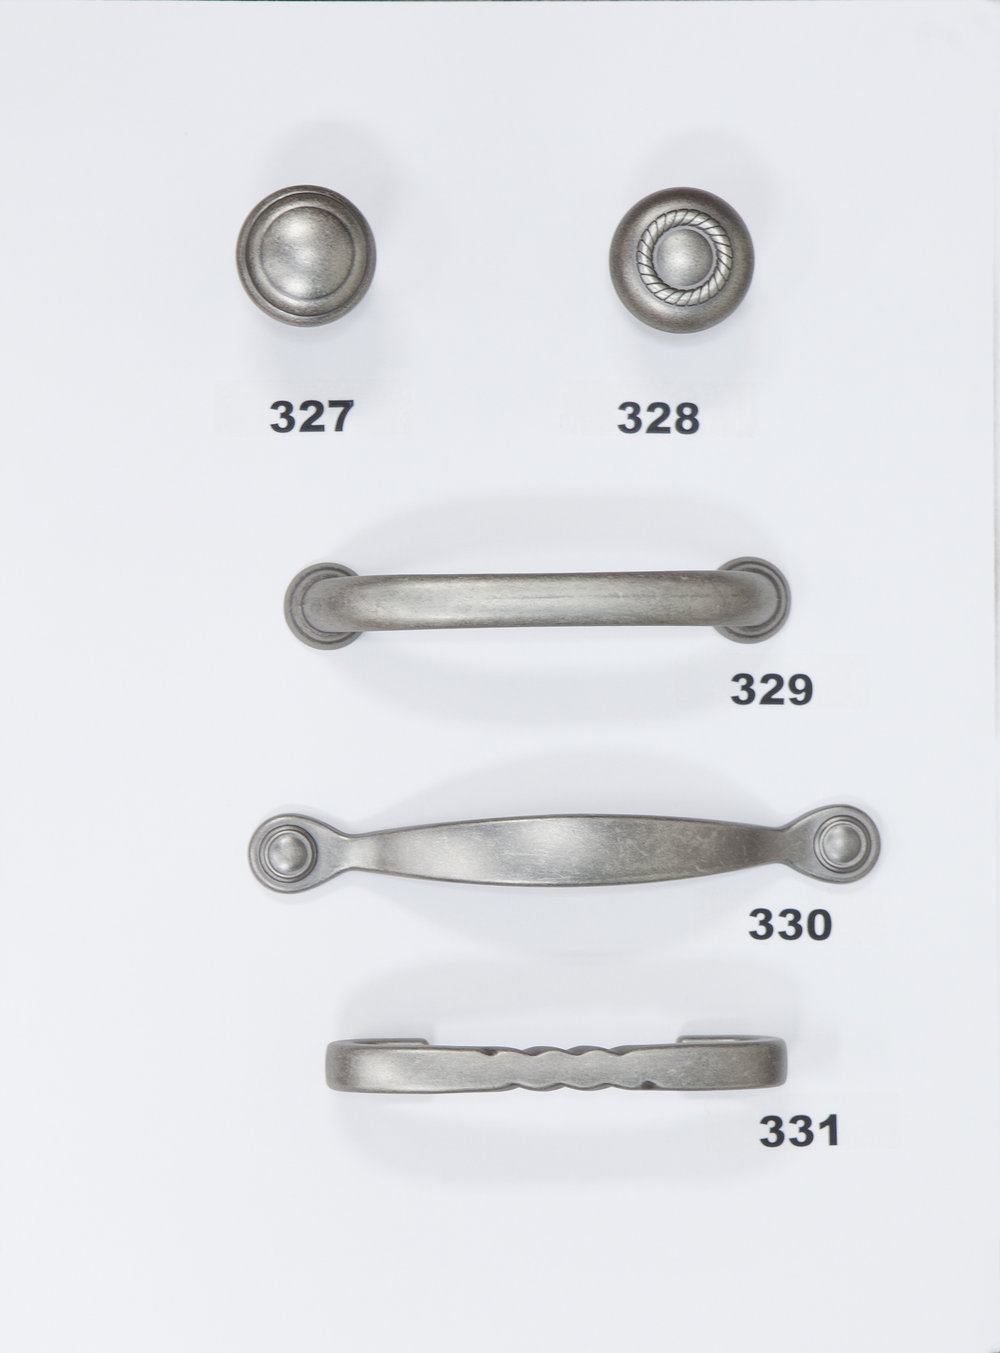 "#327 - Knob - Weathered Nickel  #328 - Knob - Weathered Nickel  #329 - 3 3/4"" Center - Weathered Nickel  #330 - 3"" Center - Weathered Nickel  #331 - 3'' Center - Weathered Nickel"